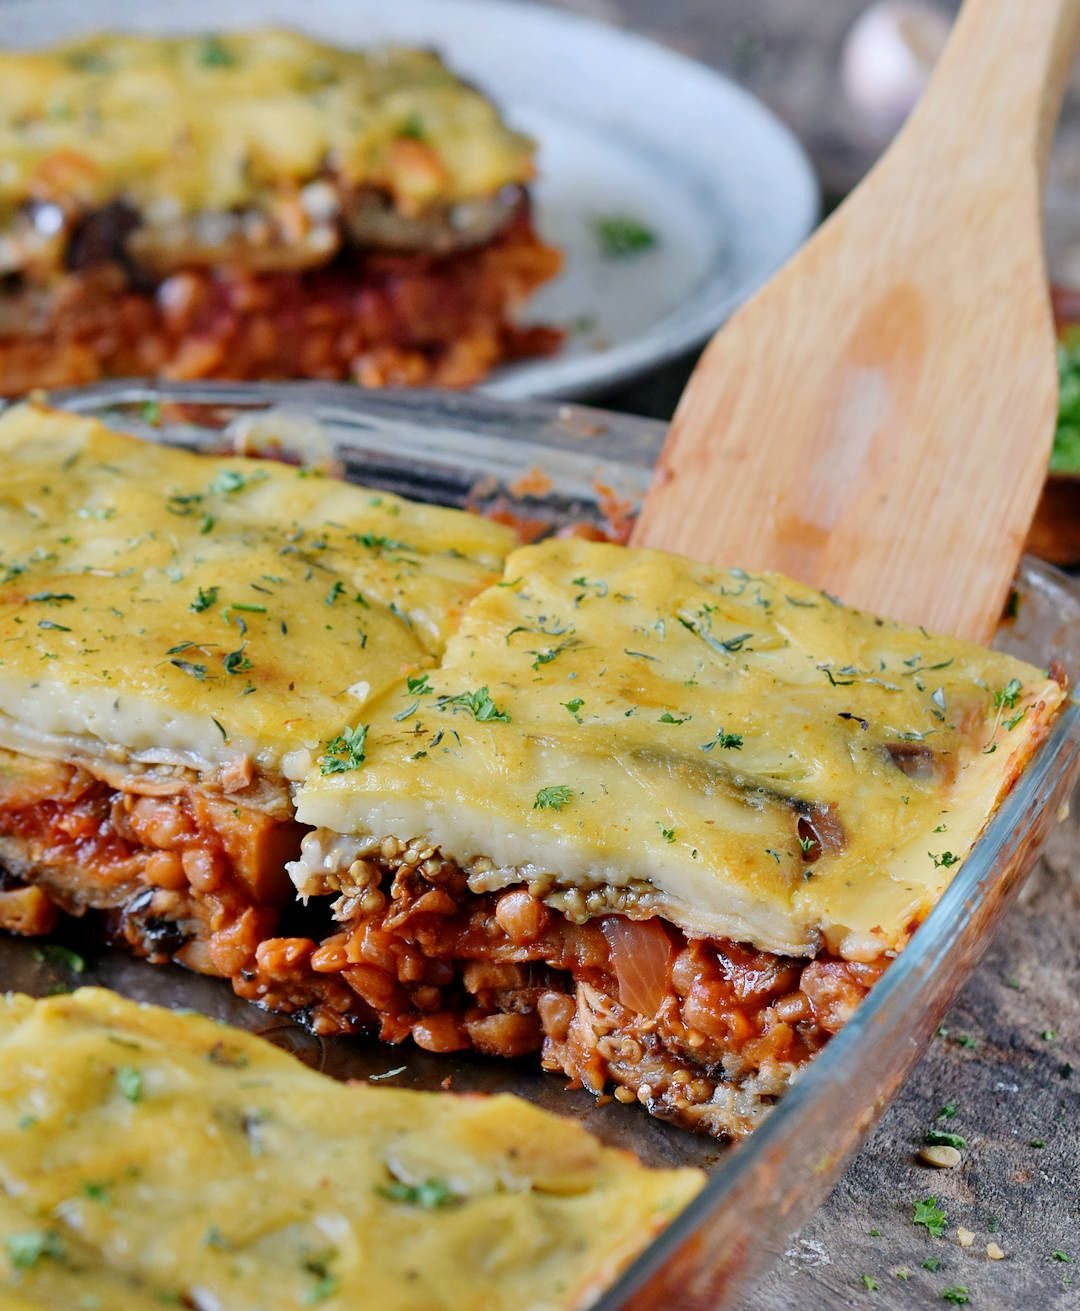 Vegan Moussaka With Lentils Healthy Gluten Free Recipe Elavegan Vegan Casserole Recipes Vegan Moussaka Healthy Vegan Snacks